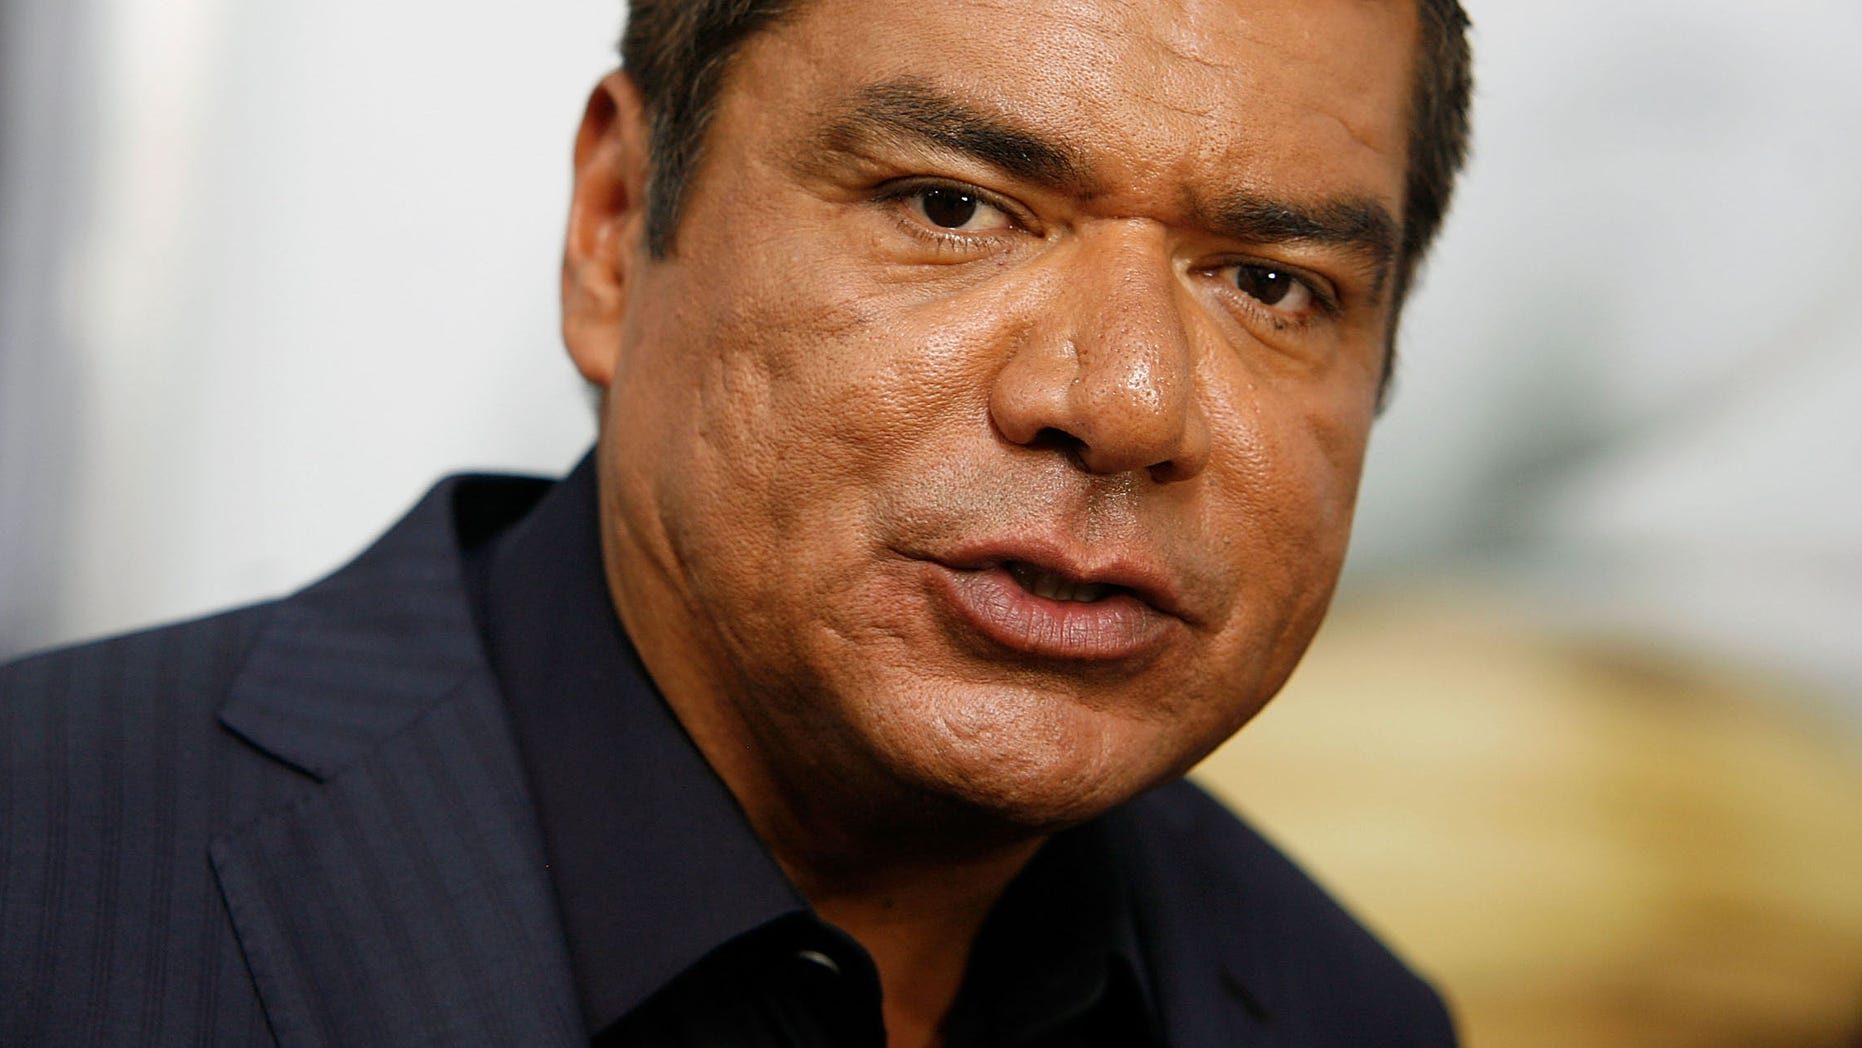 """July 24, 2011: George Lopez attends the premiere of """"The Smurfs"""" at the Ziegfeld Theater in New York City."""